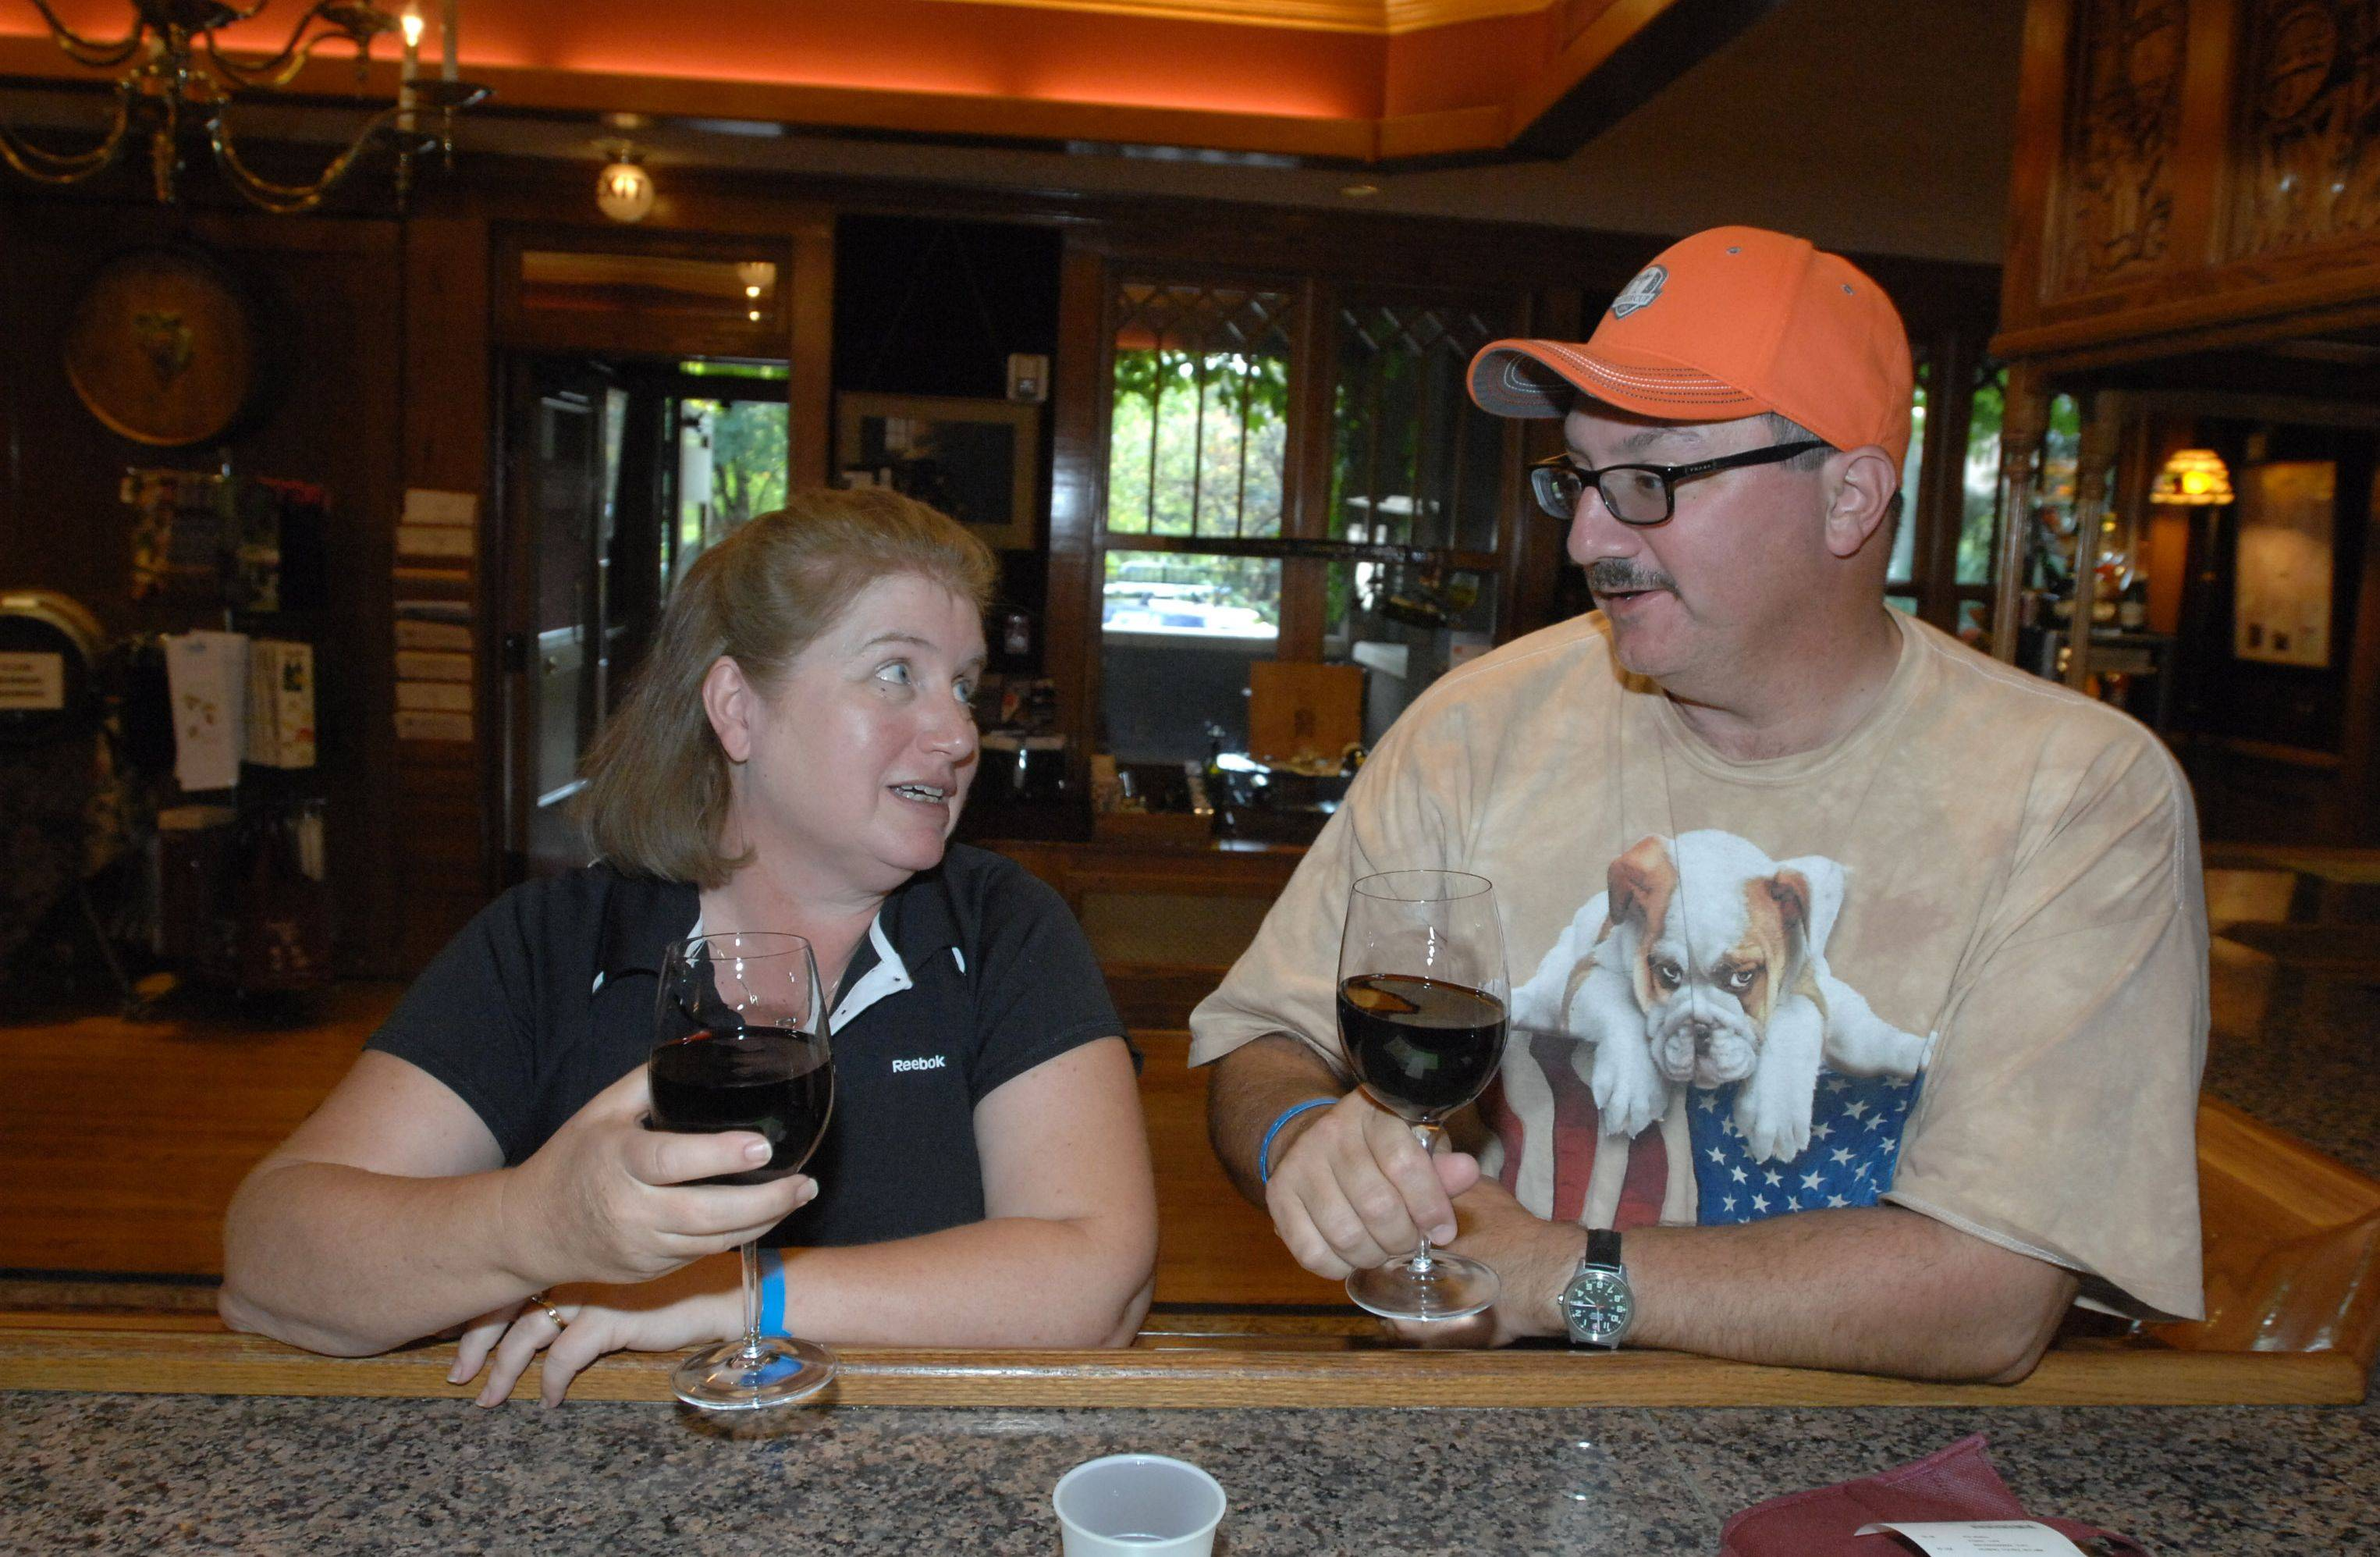 Kristy Glass, left, and Jeff Glass of Schaumburg have a glass of wine at the Lynfred Winery in Roselle after attending the Ryder Cup. The winery has seen a substantial boost in business from the event.